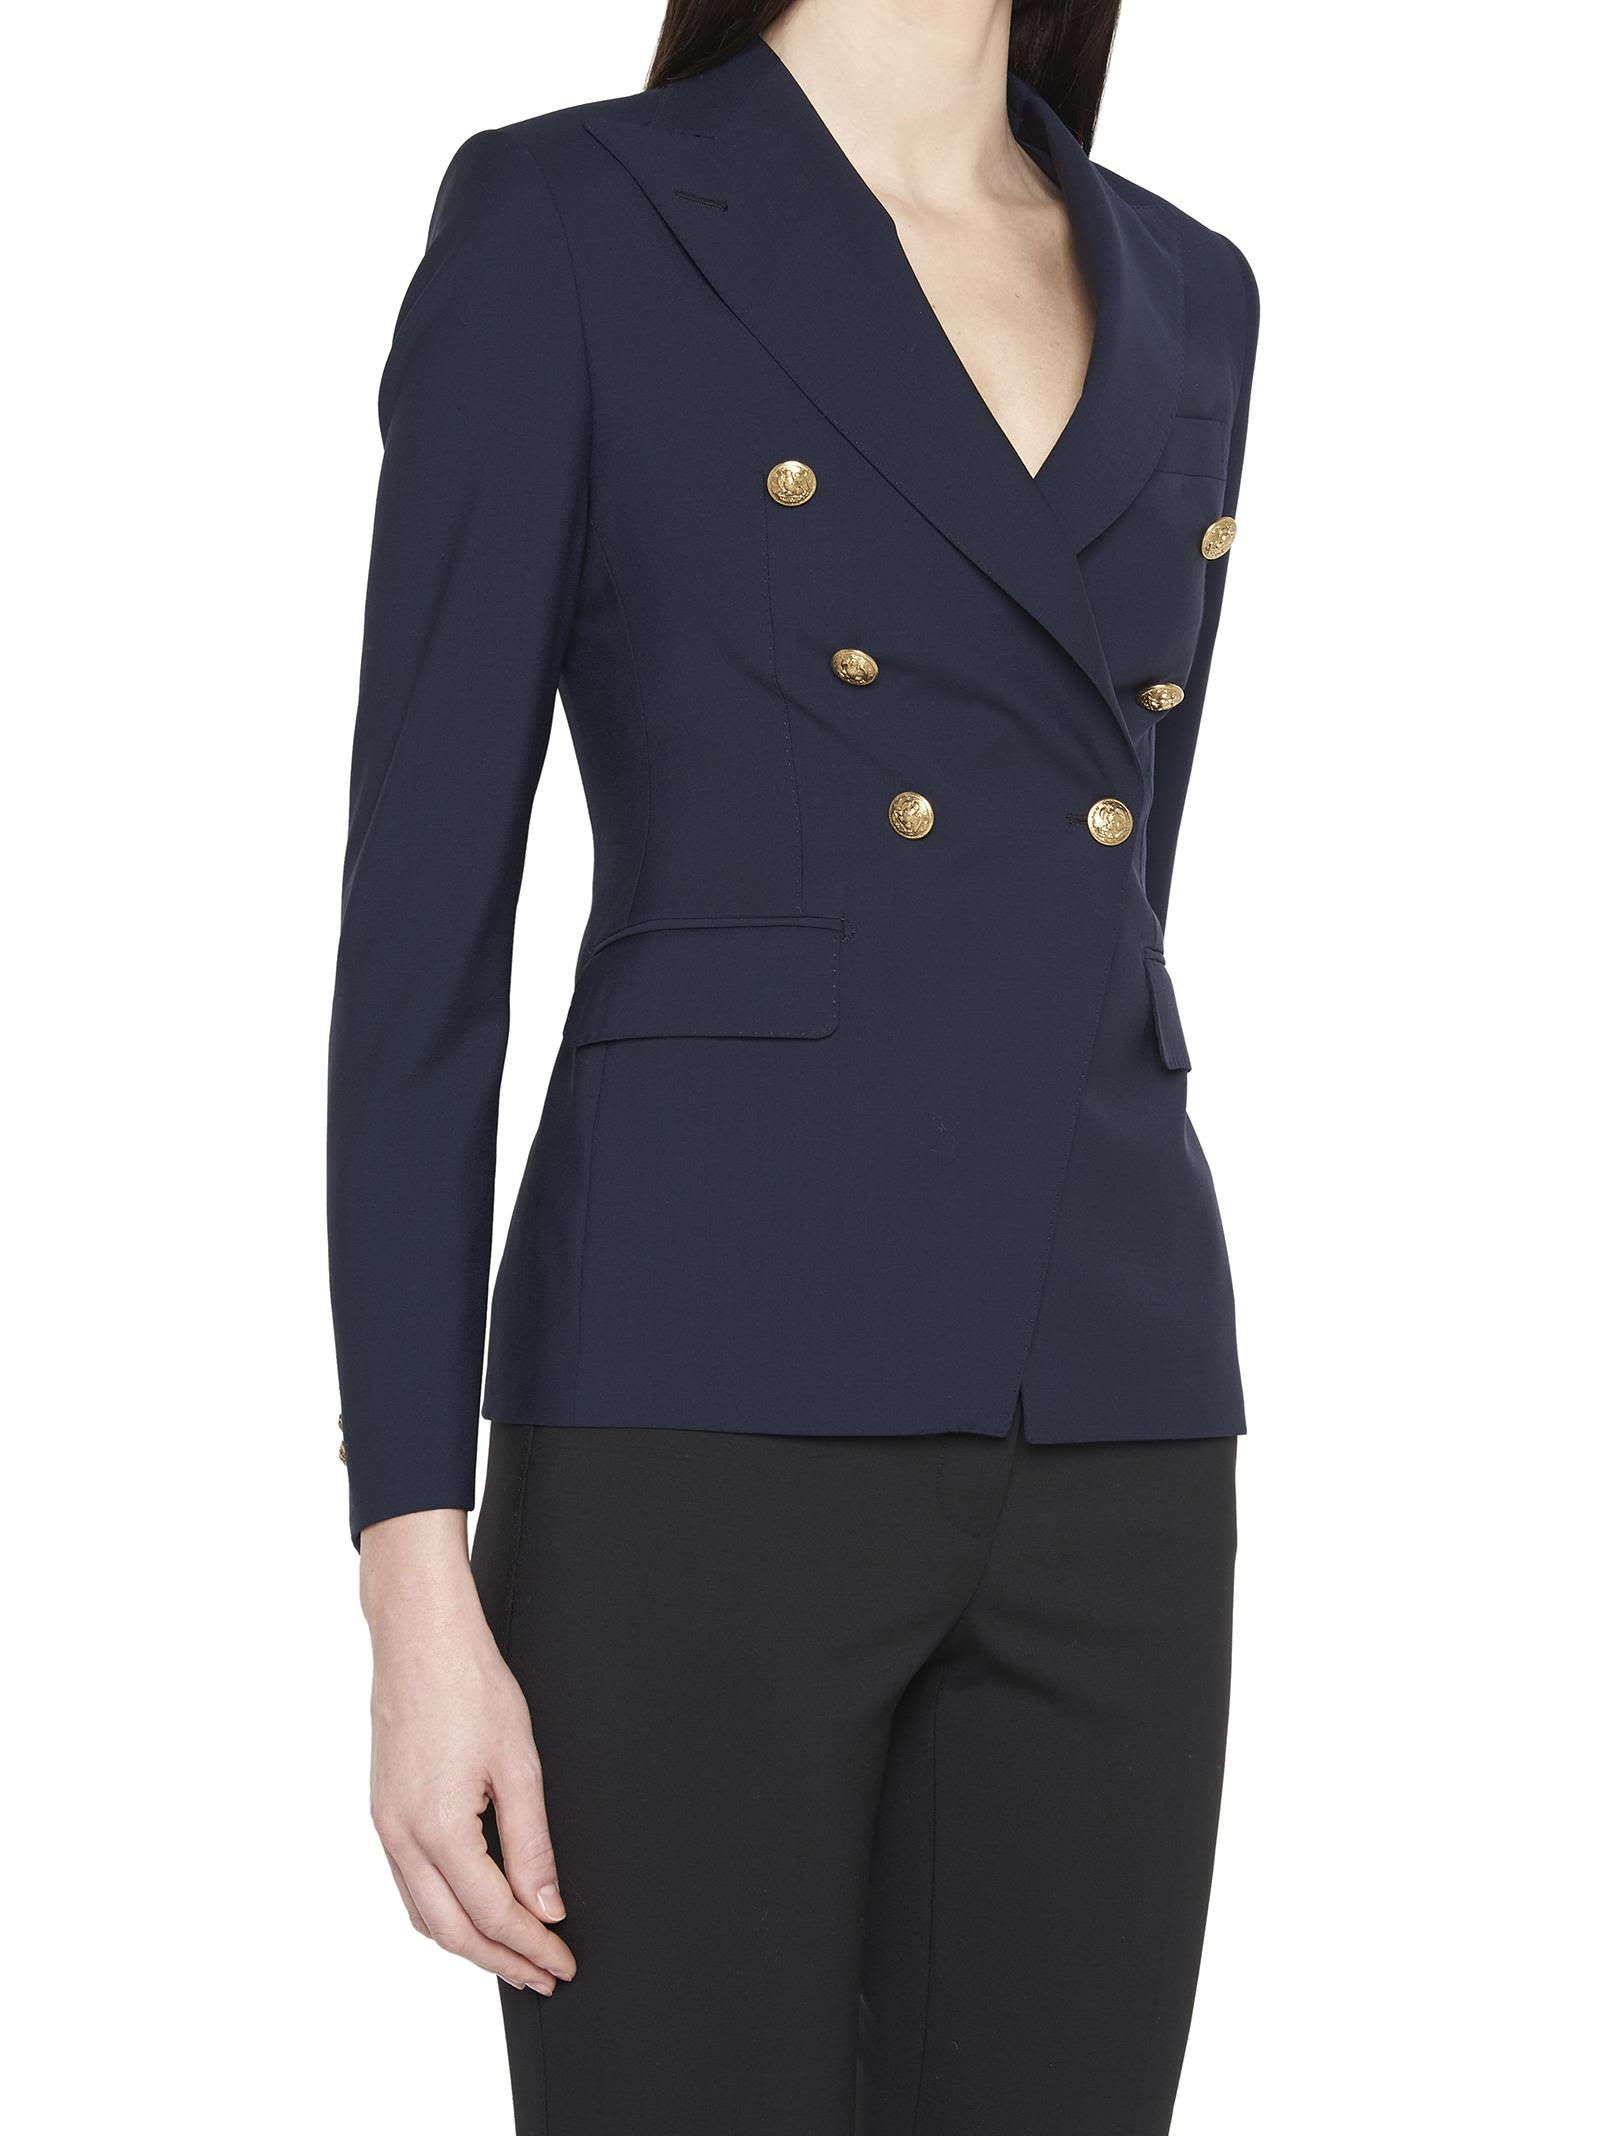 Clearance Low Price Fee Shipping Cheap Looking For j-alycia jacket Tagliatore S7nDH6